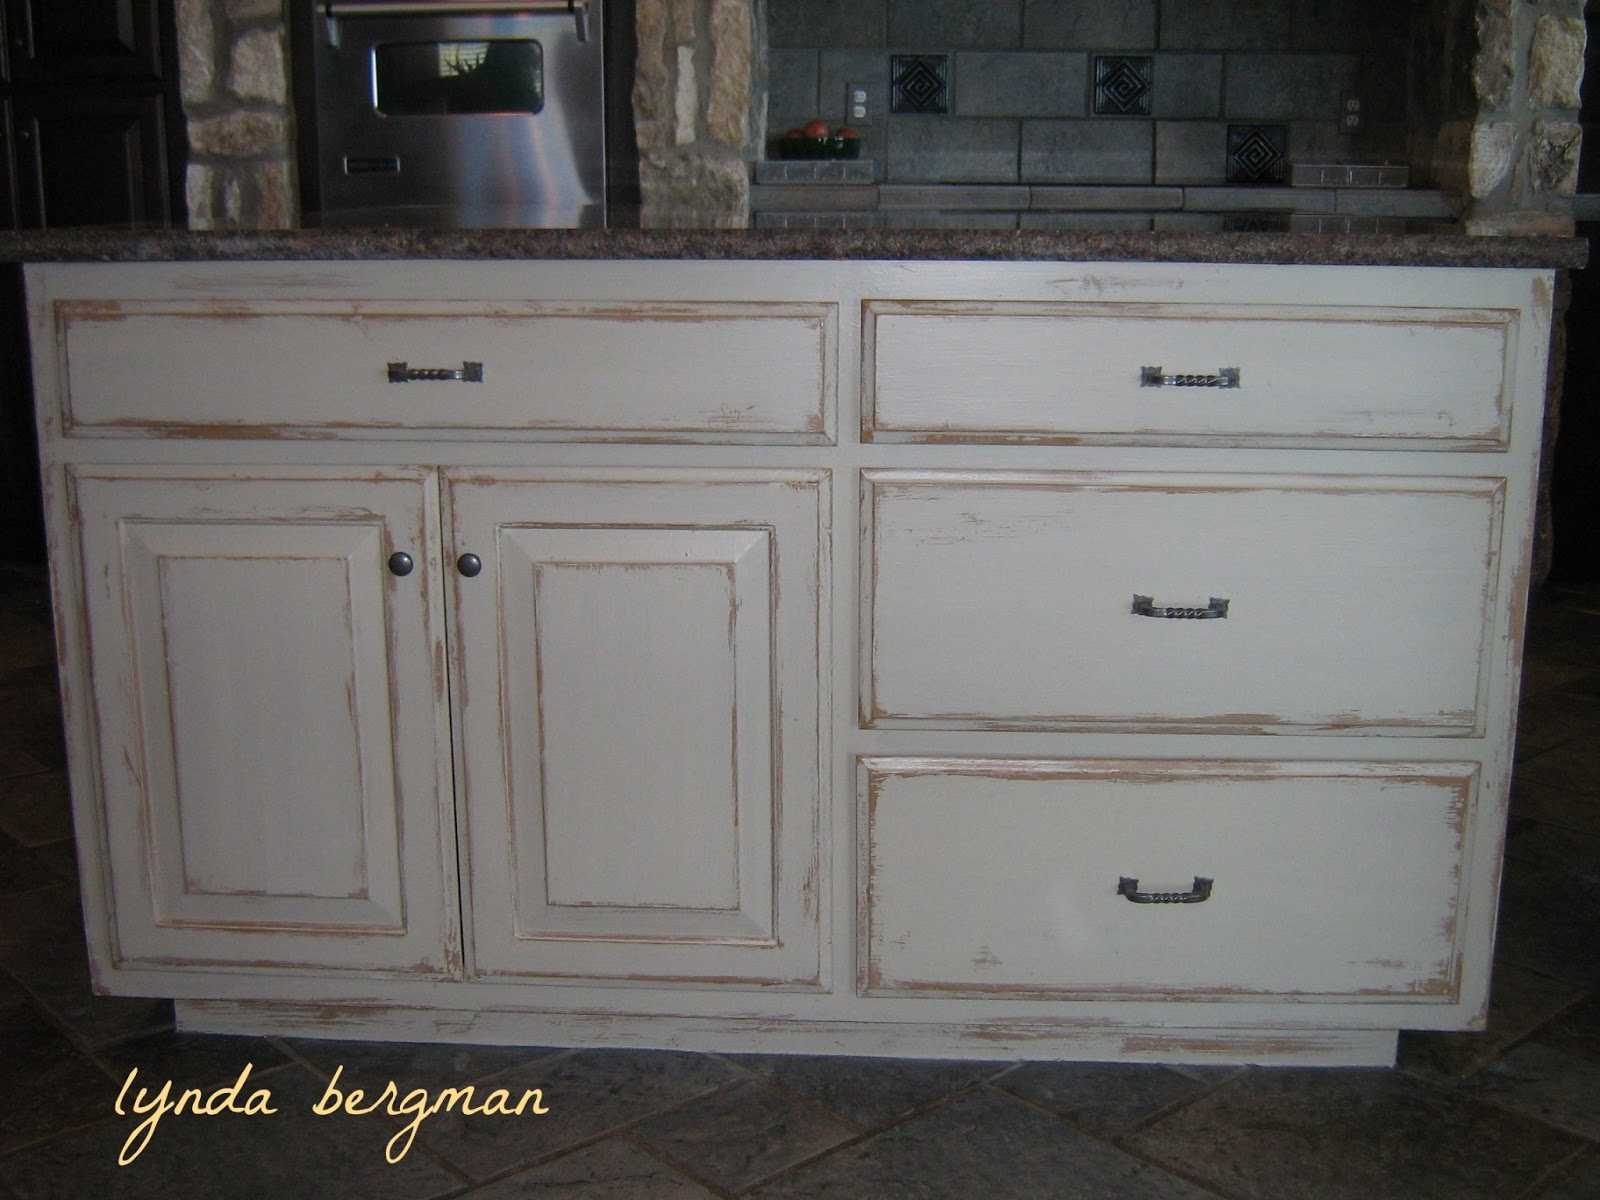 Lynda bergman decorative artisan white kitchen cabinets for Distressed kitchen cabinets